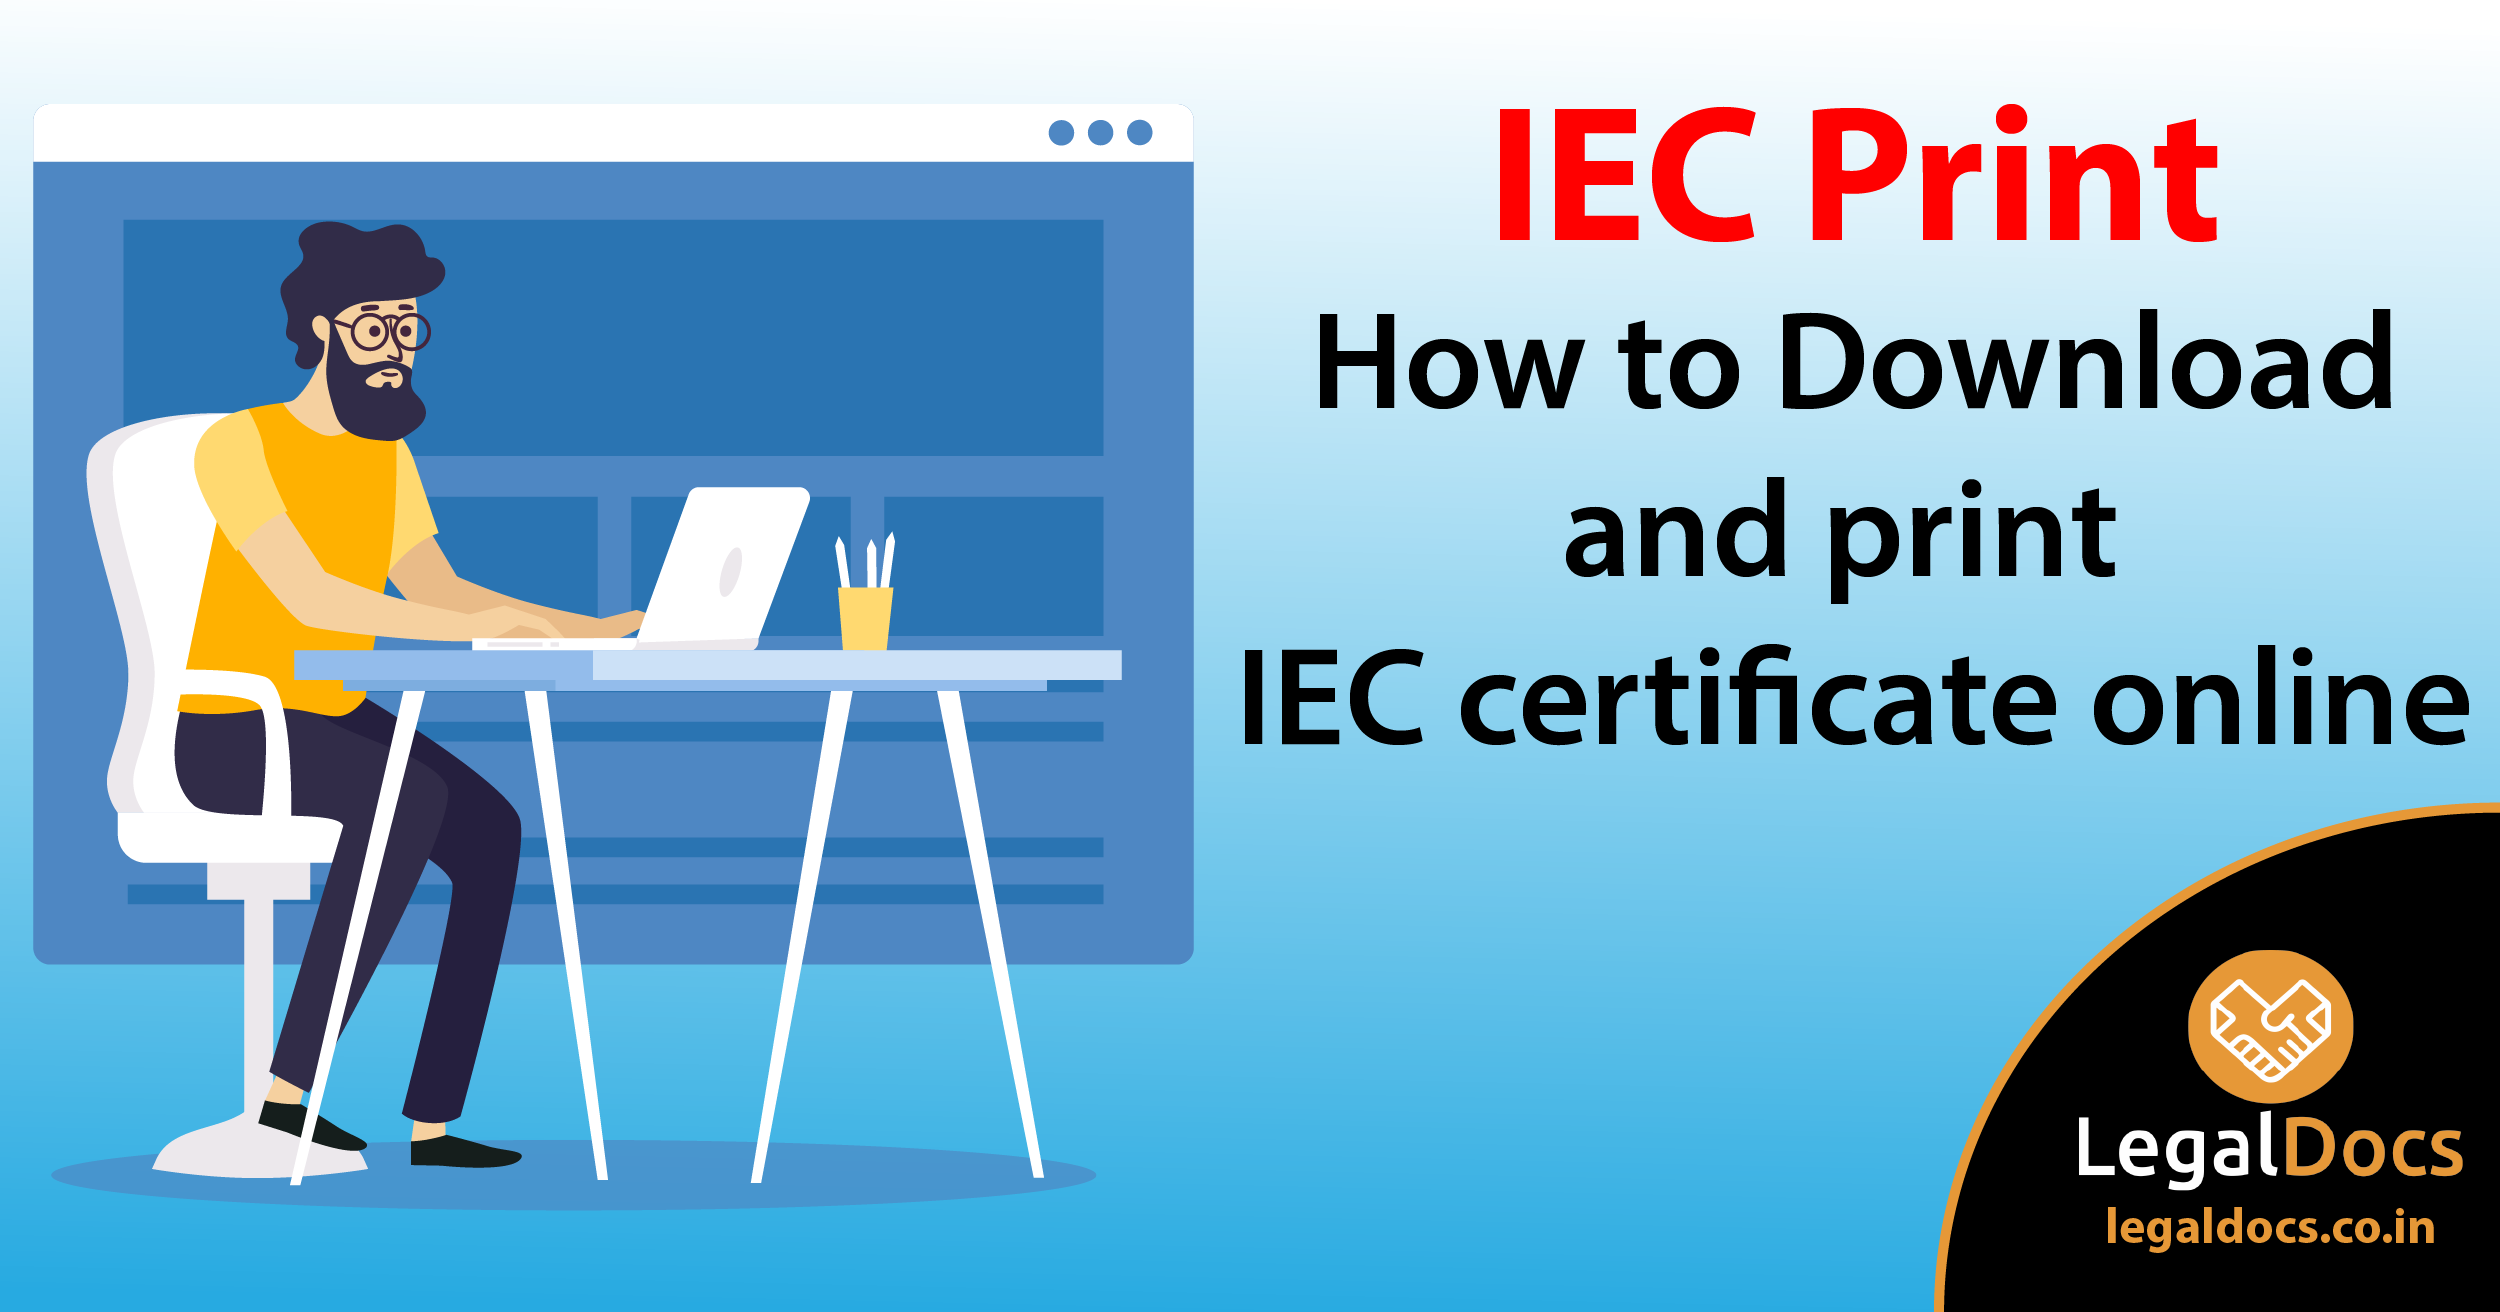 IEC Print - How to Download and Print IEC Certificate Online